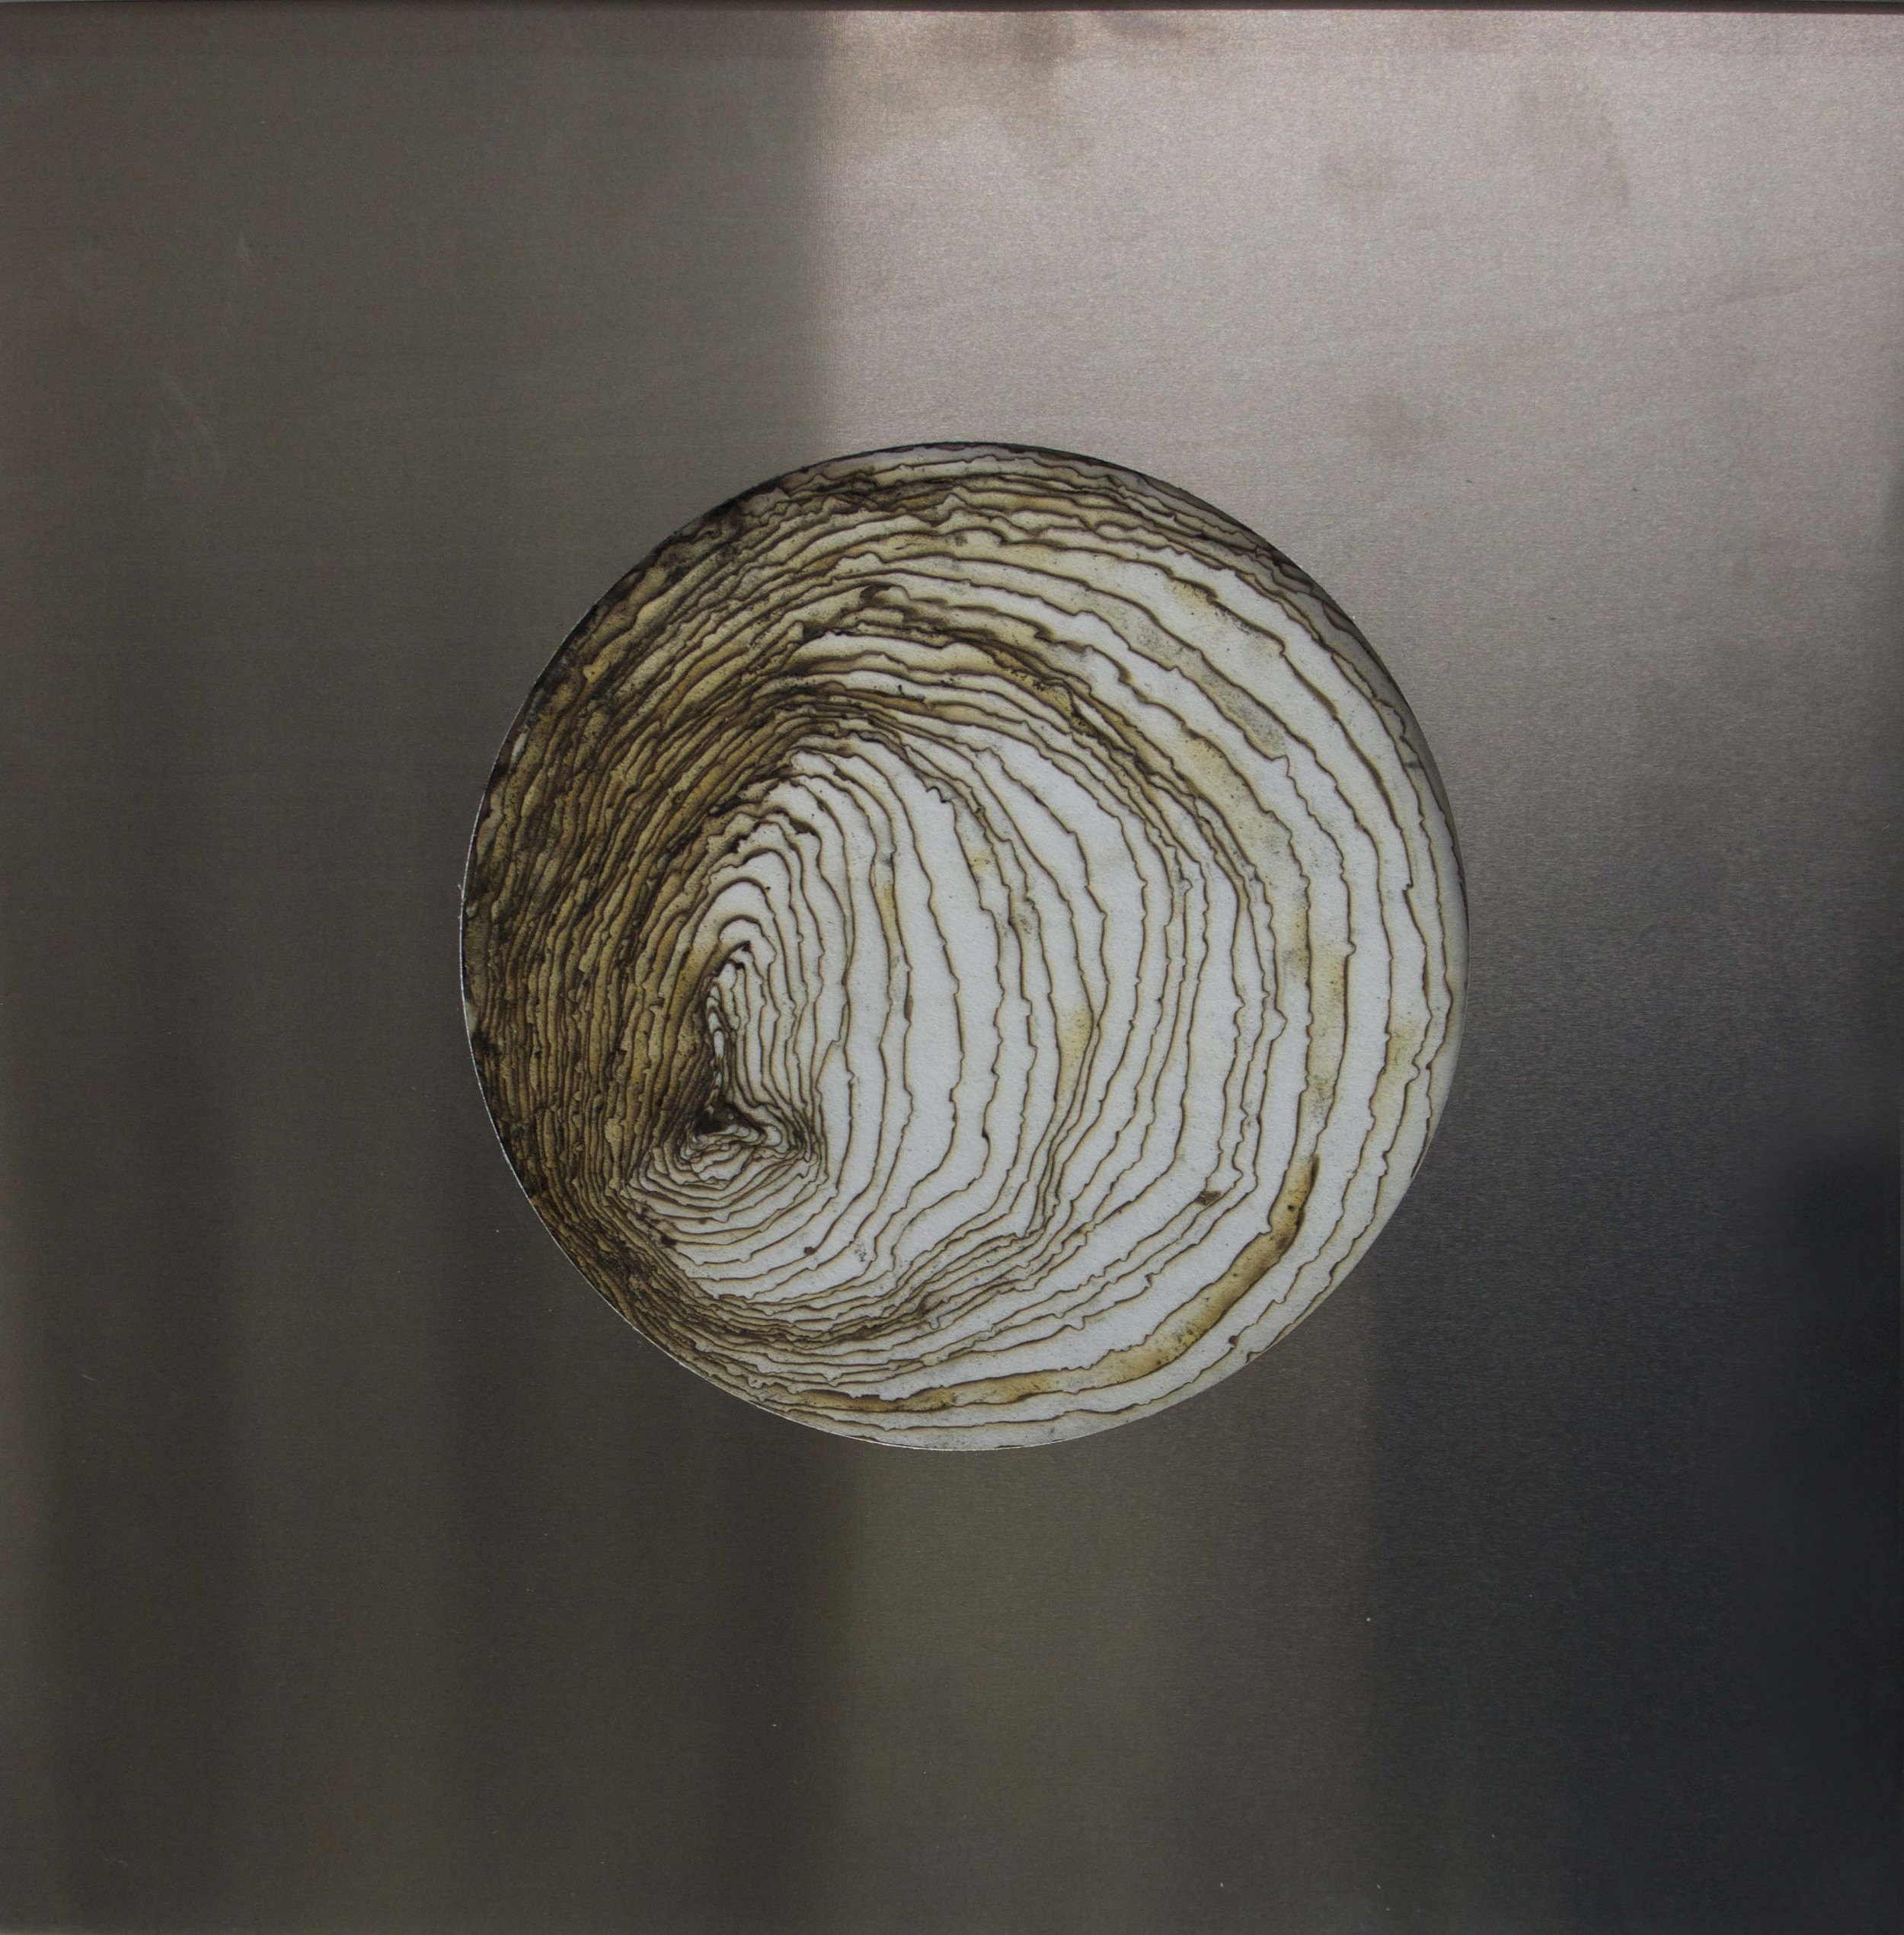 40 layers of incense burnt rice paper surrounded by steel, 30 x 30 cm